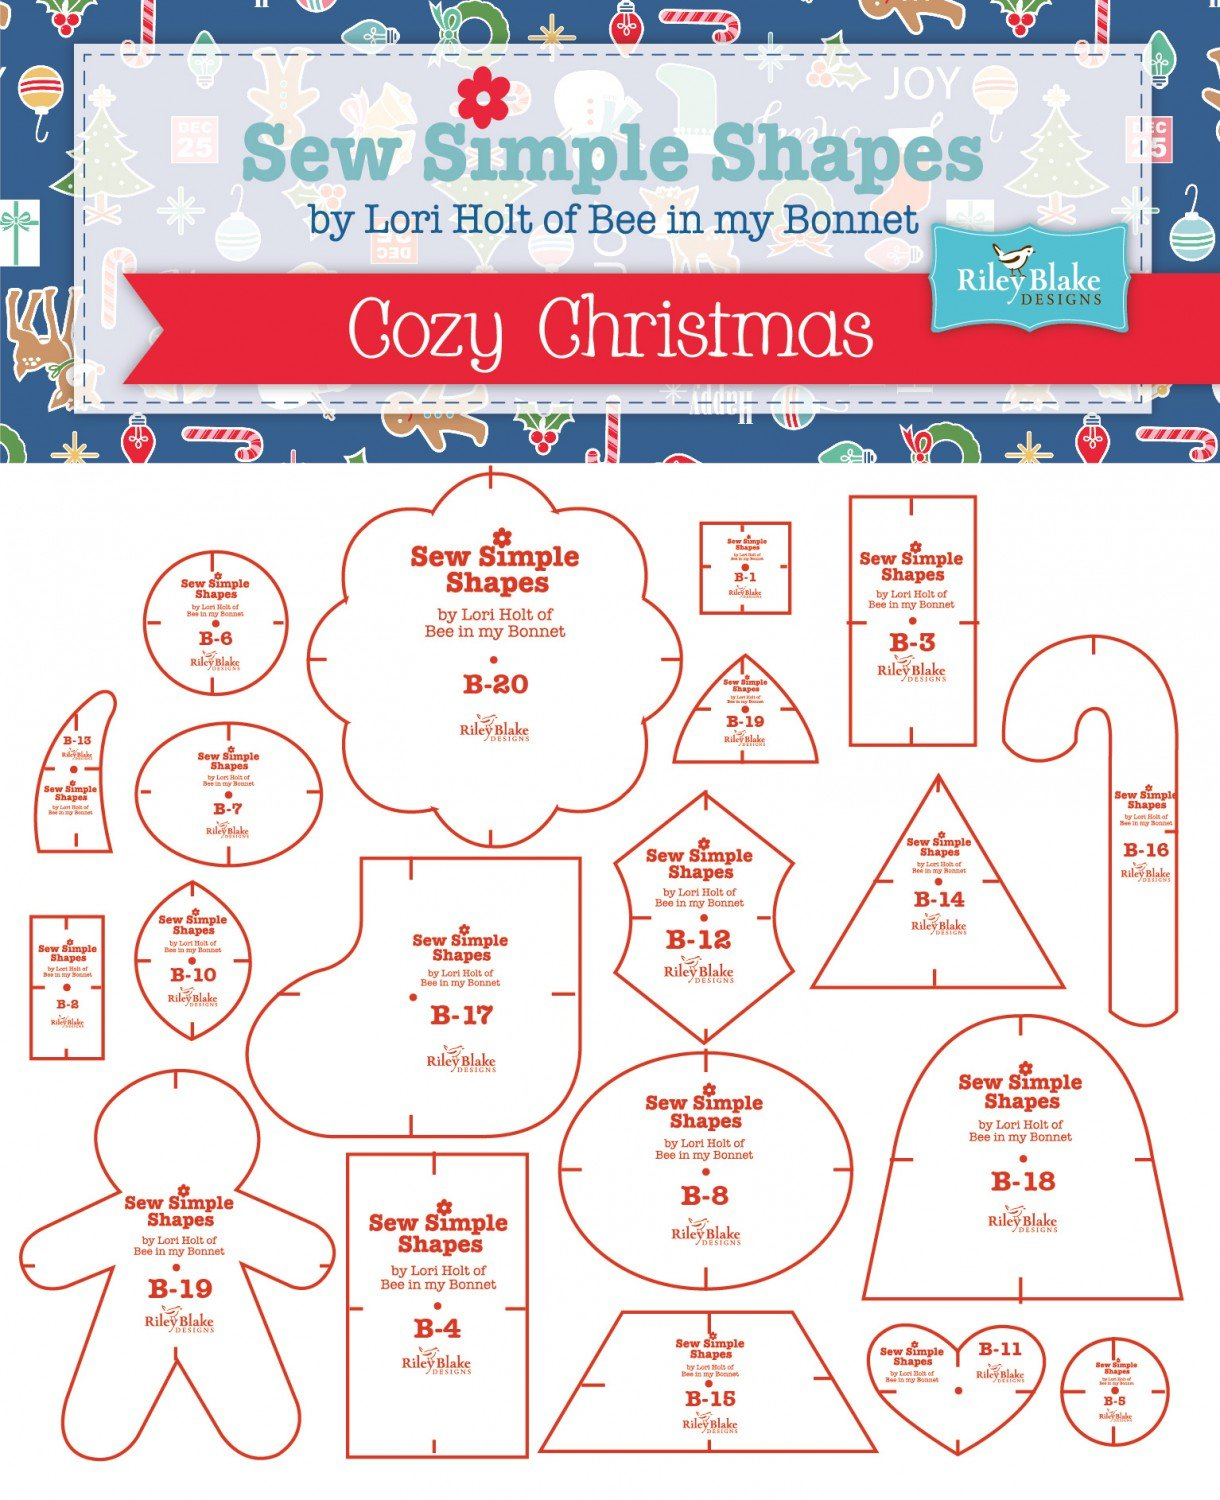 Cozy Christmas Templates - Bee In My Bonnet Sew Simple Shapes